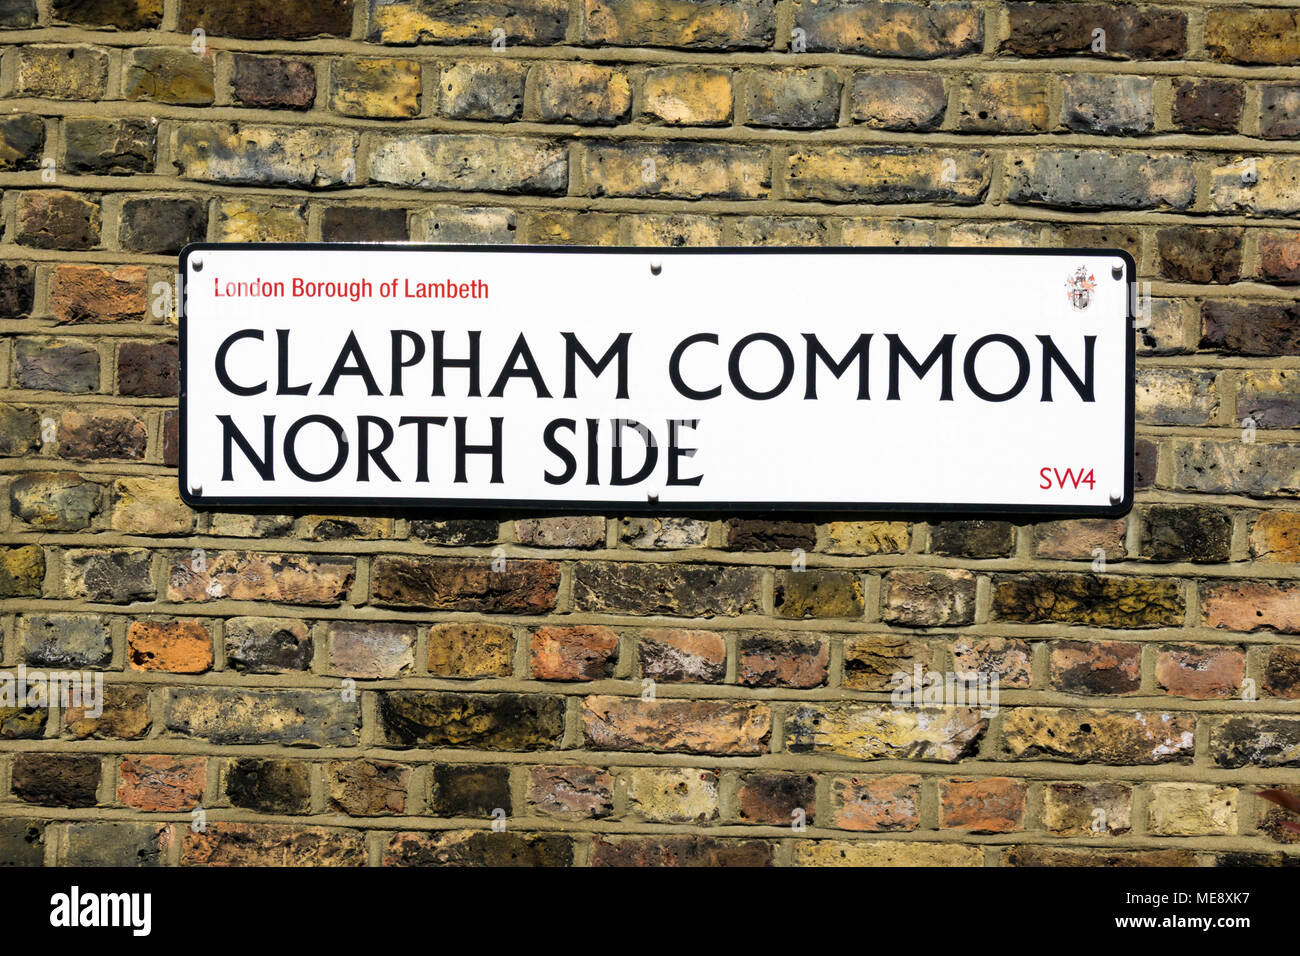 Street sign for Clapham Common North Side in the London Borough of Lambeth - Stock Image